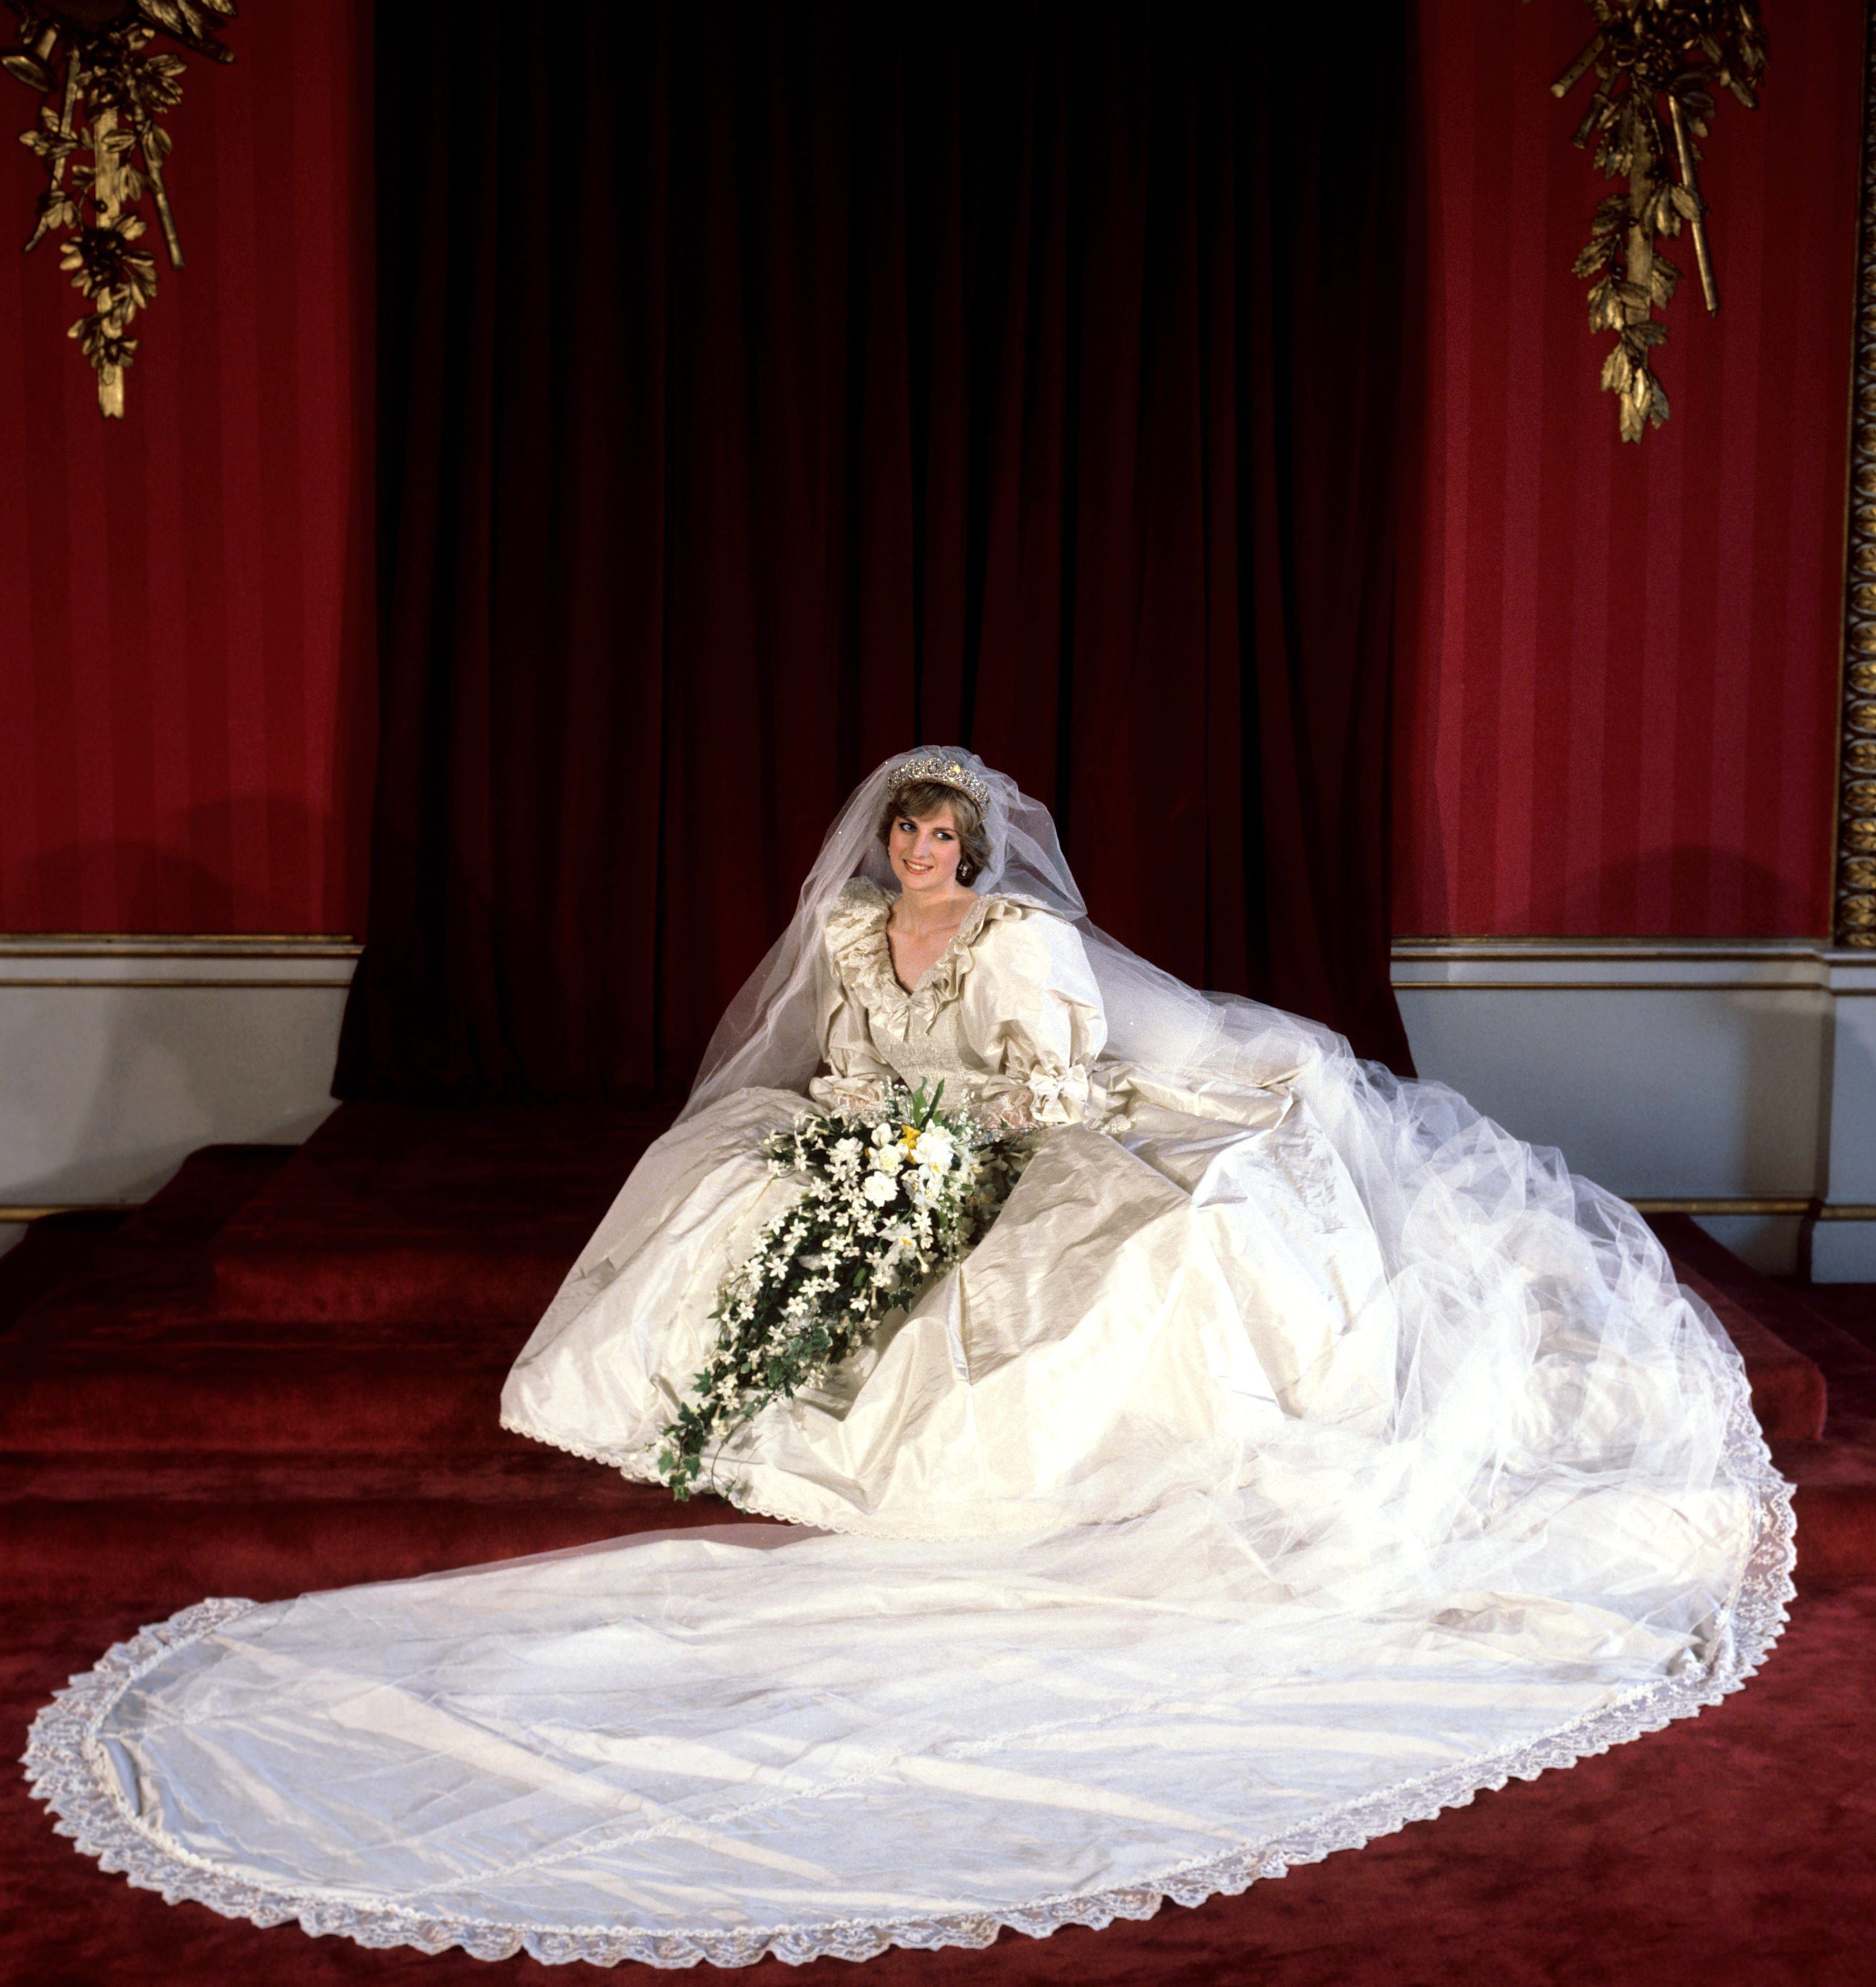 All The Hidden Details On Princess Diana S Wedding Dress You Didn T Know About Fame10 [ 3500 x 3305 Pixel ]